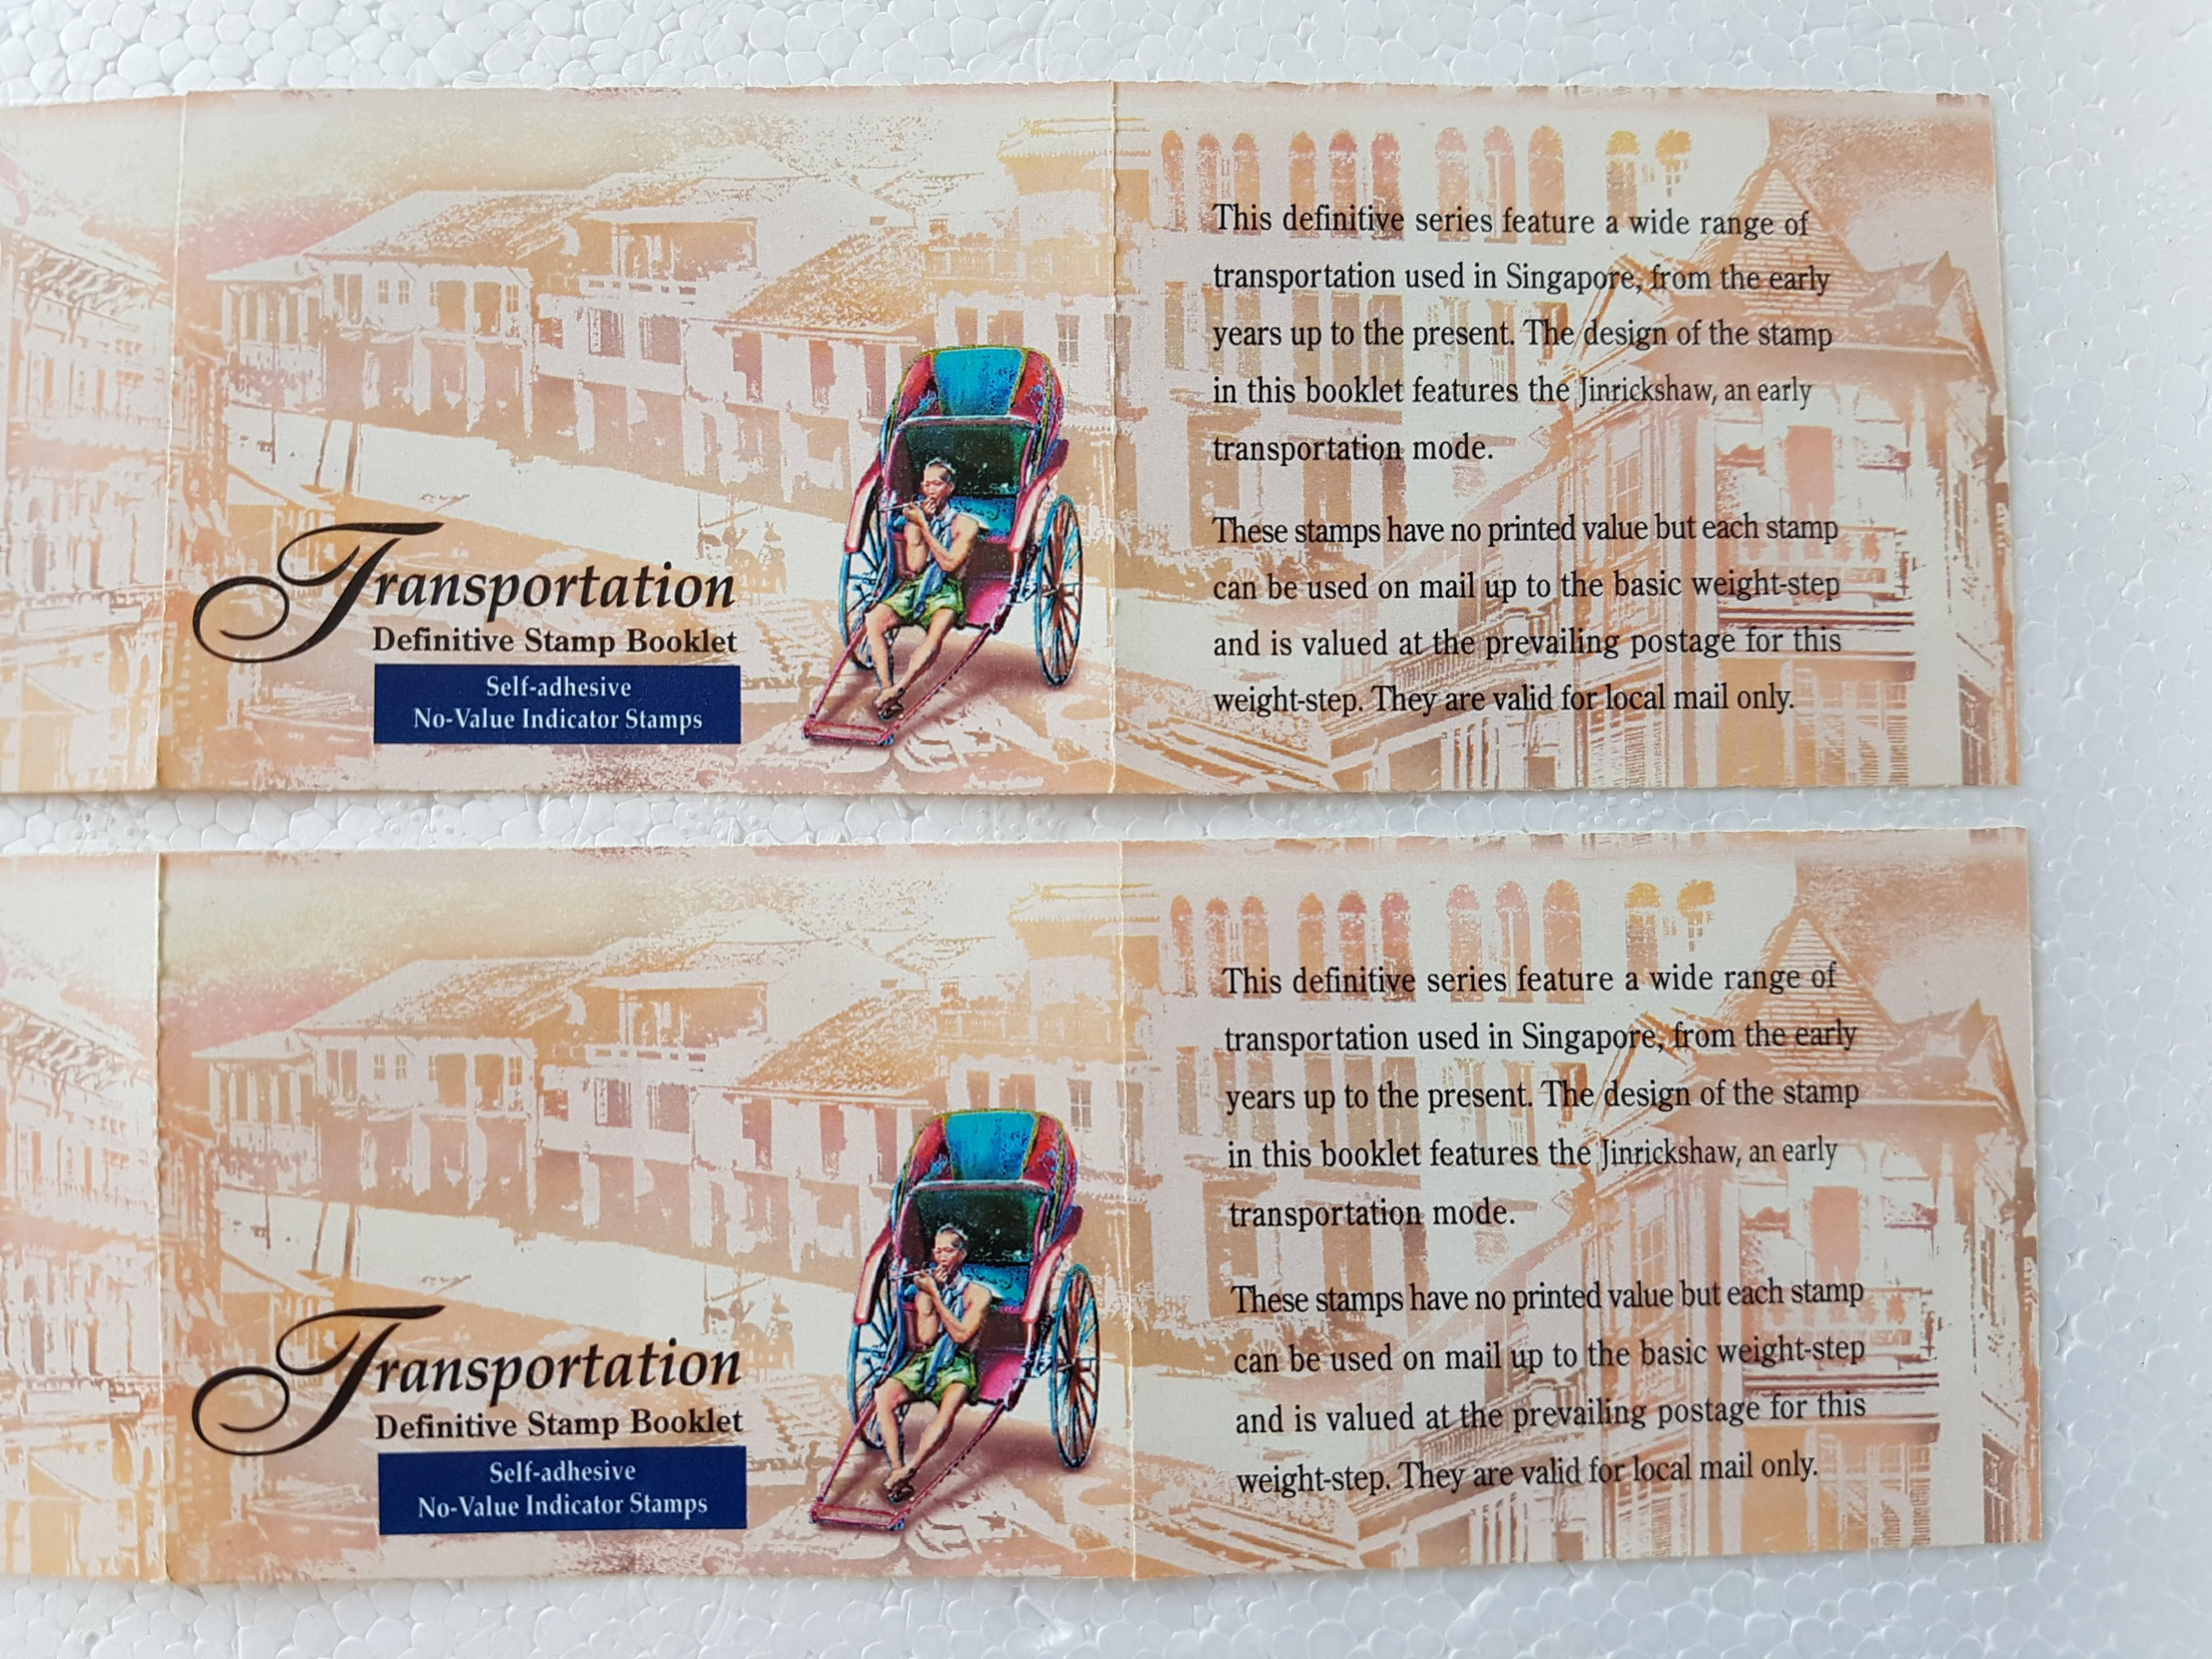 2 x 10 Stamps Transportation Definitive Stamp Booklet. Self-adhesive No Value Indicated Stamps